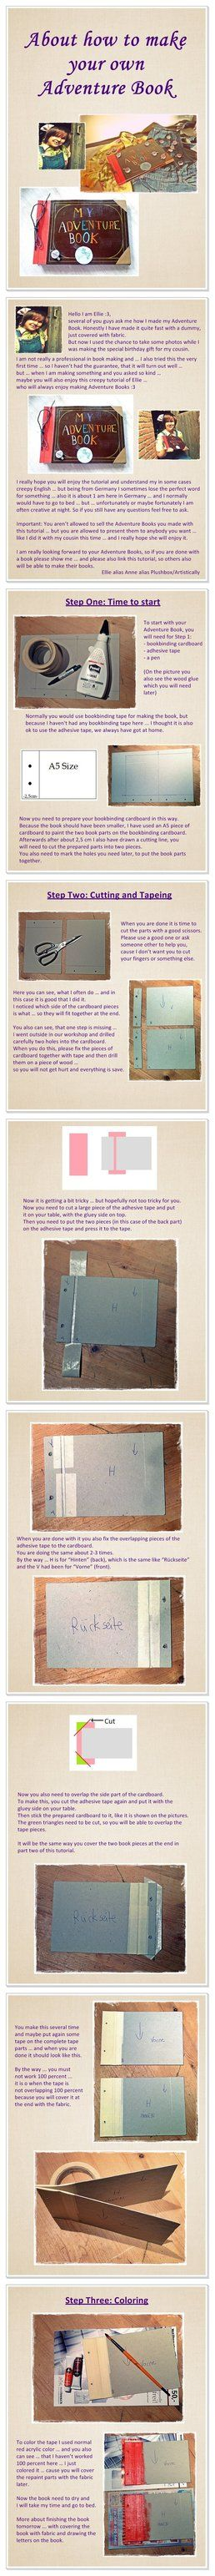 Adventure Book Tutorial I by =Plushbox on deviantART  How to make ther Adventure Book from UP